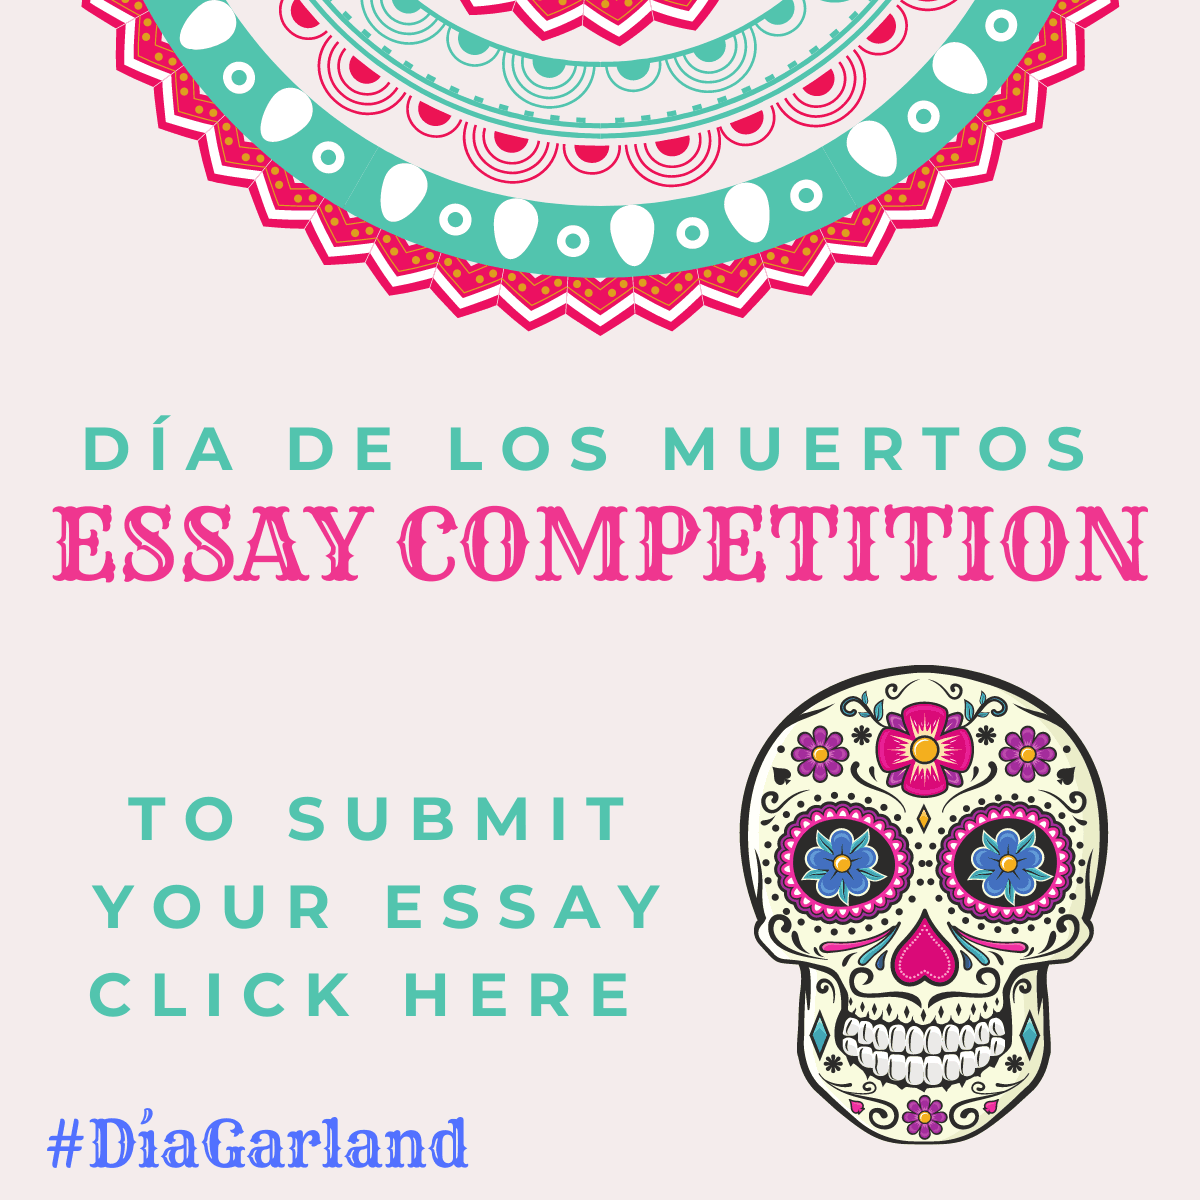 Essay Competition Opens in new window